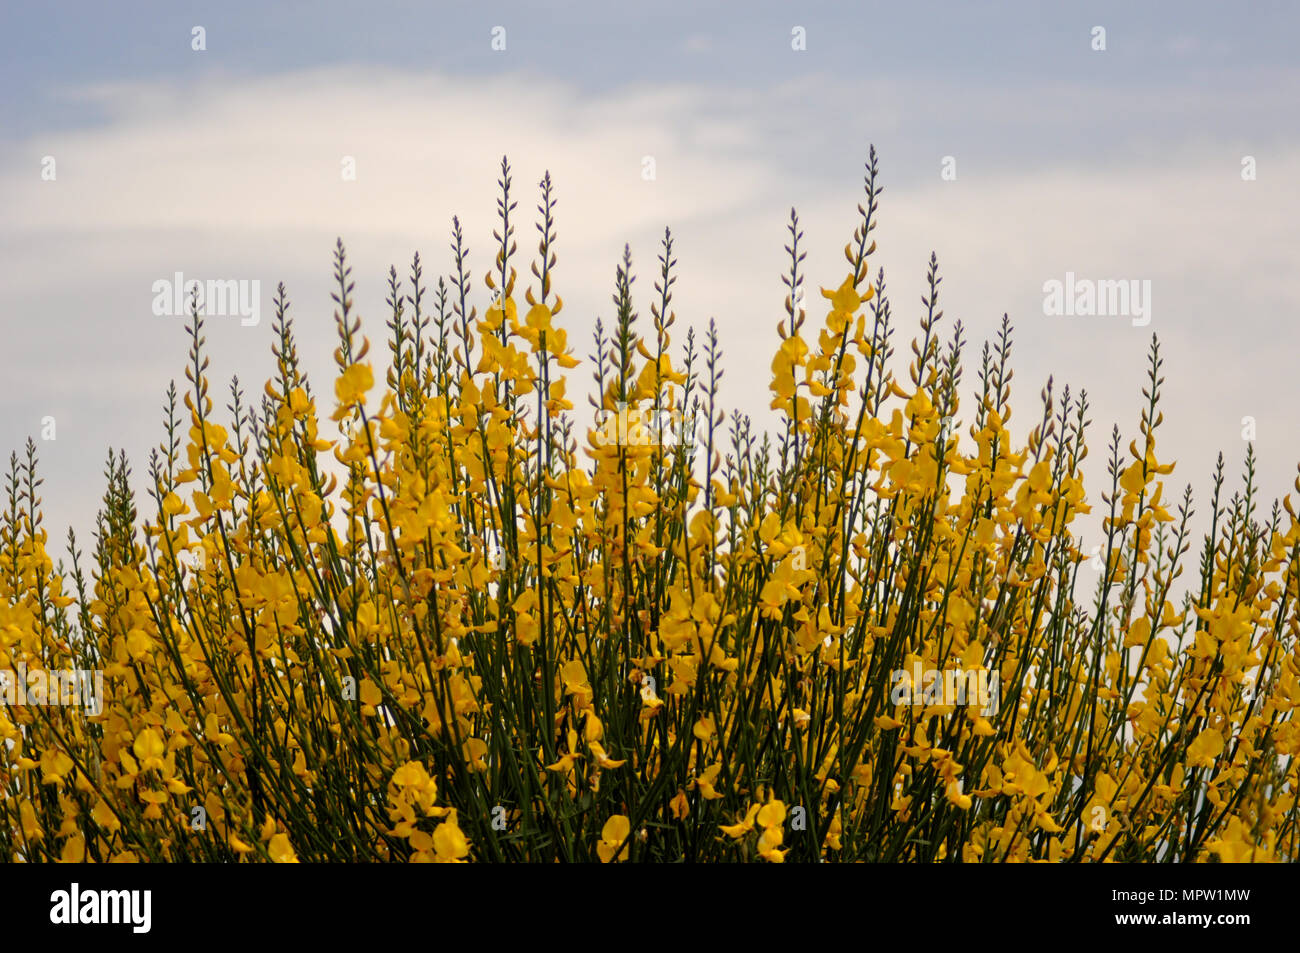 Broom bushes with yellow flowers stock photo 186176281 alamy broom bushes with yellow flowers mightylinksfo